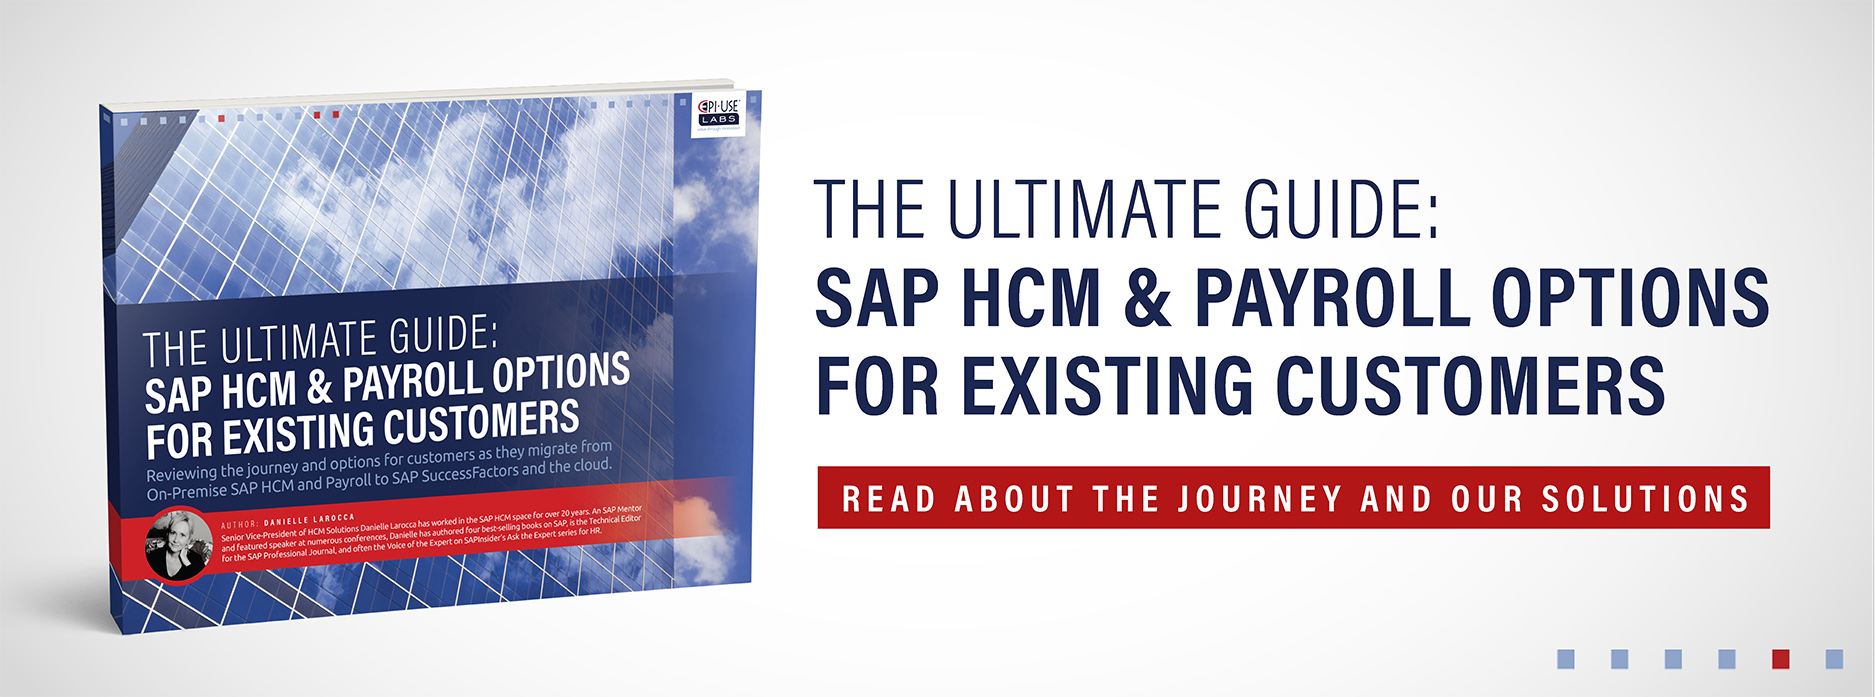 CTA_The Ultimate Guide_SAP HCM and Payroll Options